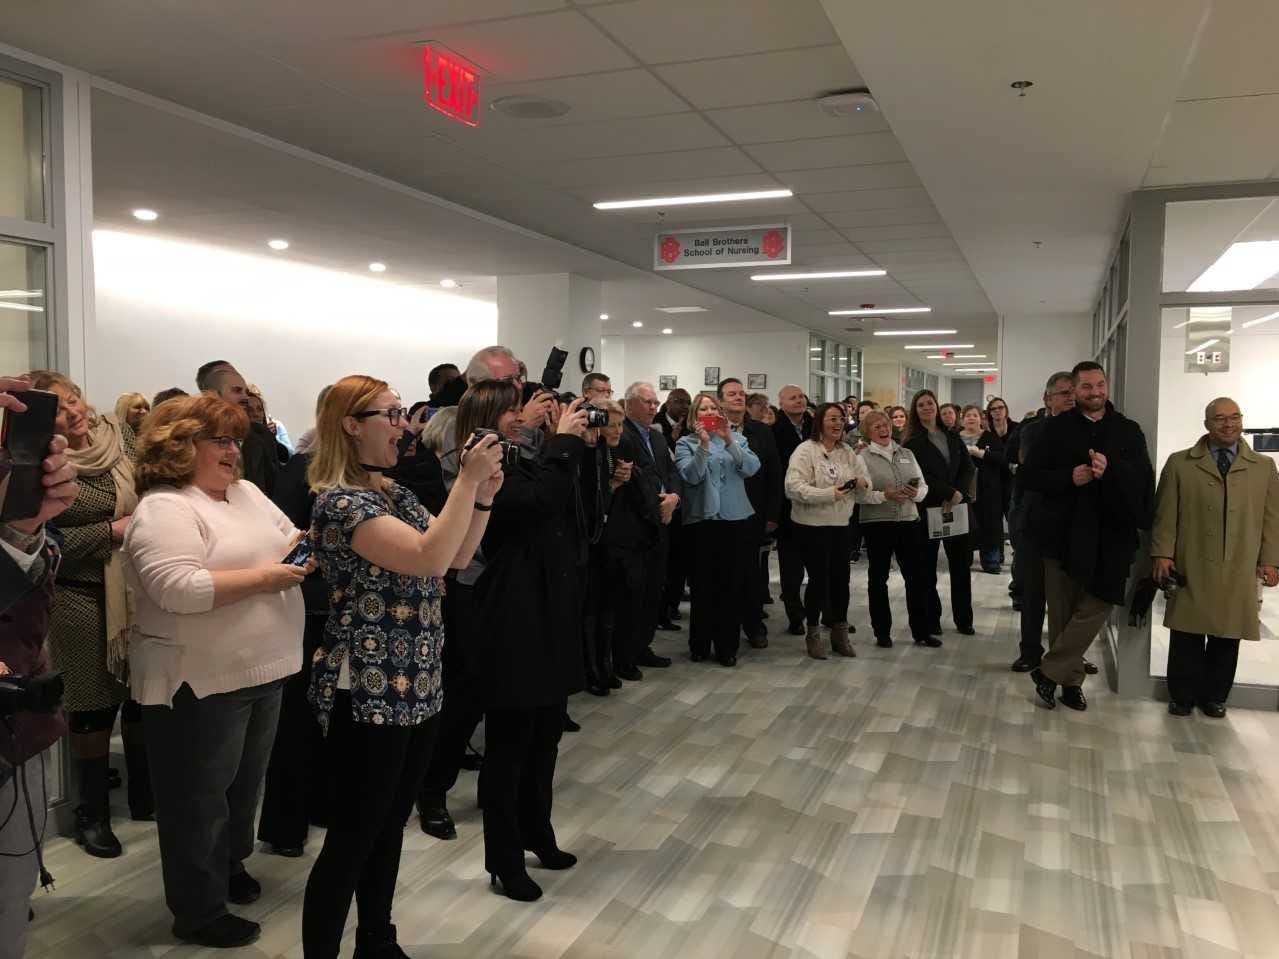 The crowd takes photographs of a ribbon-cutting ceremony at Ivy Tech Community College's new schools of nursing and health sciences in downtown Muncie on Tuesday.